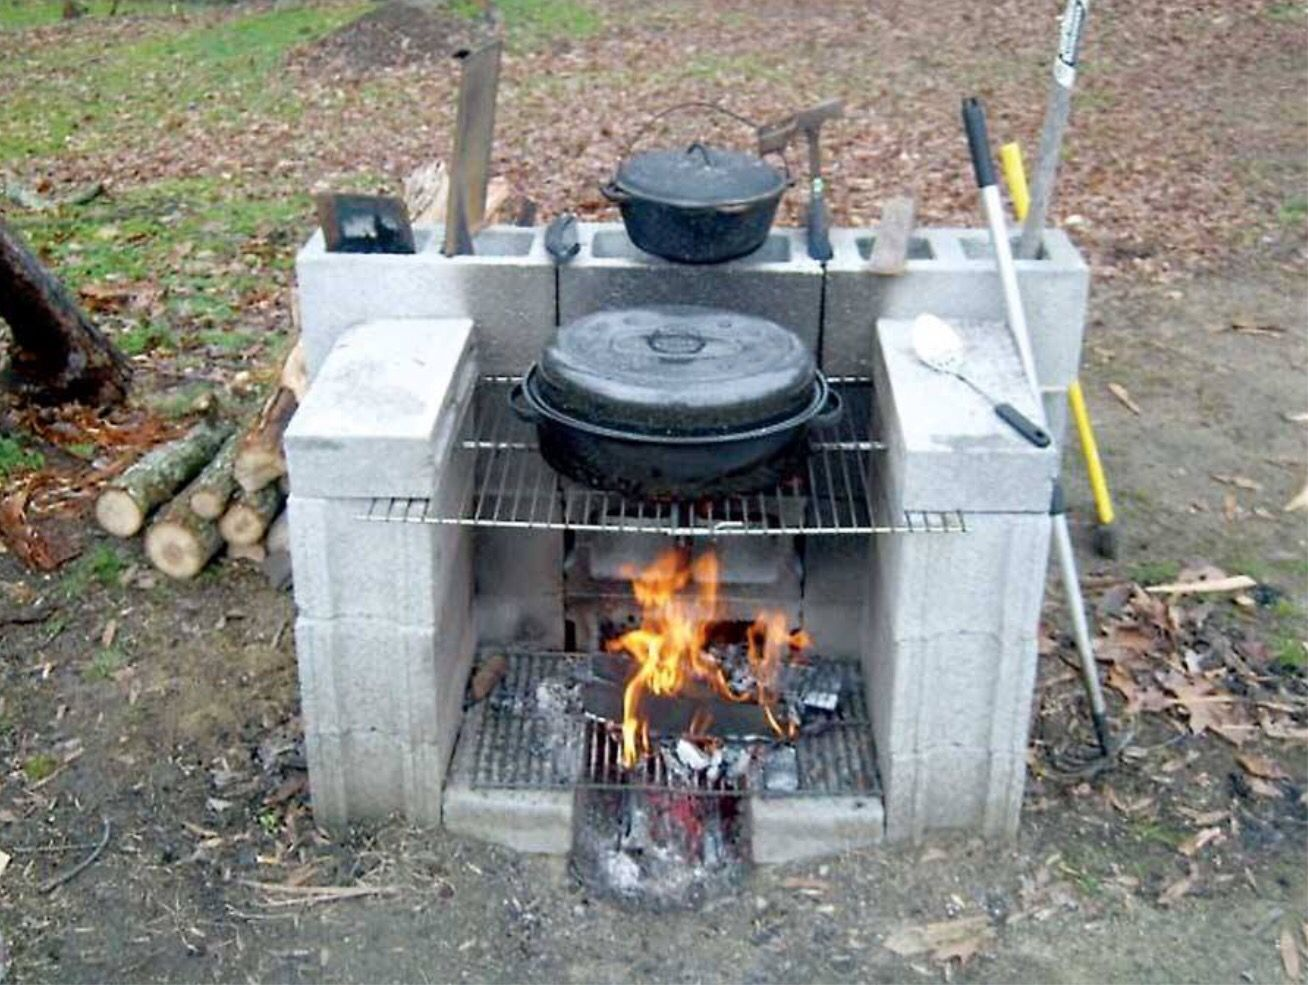 Cheap outdoor grill. Camping. | Grilling | Diy outdoor ...